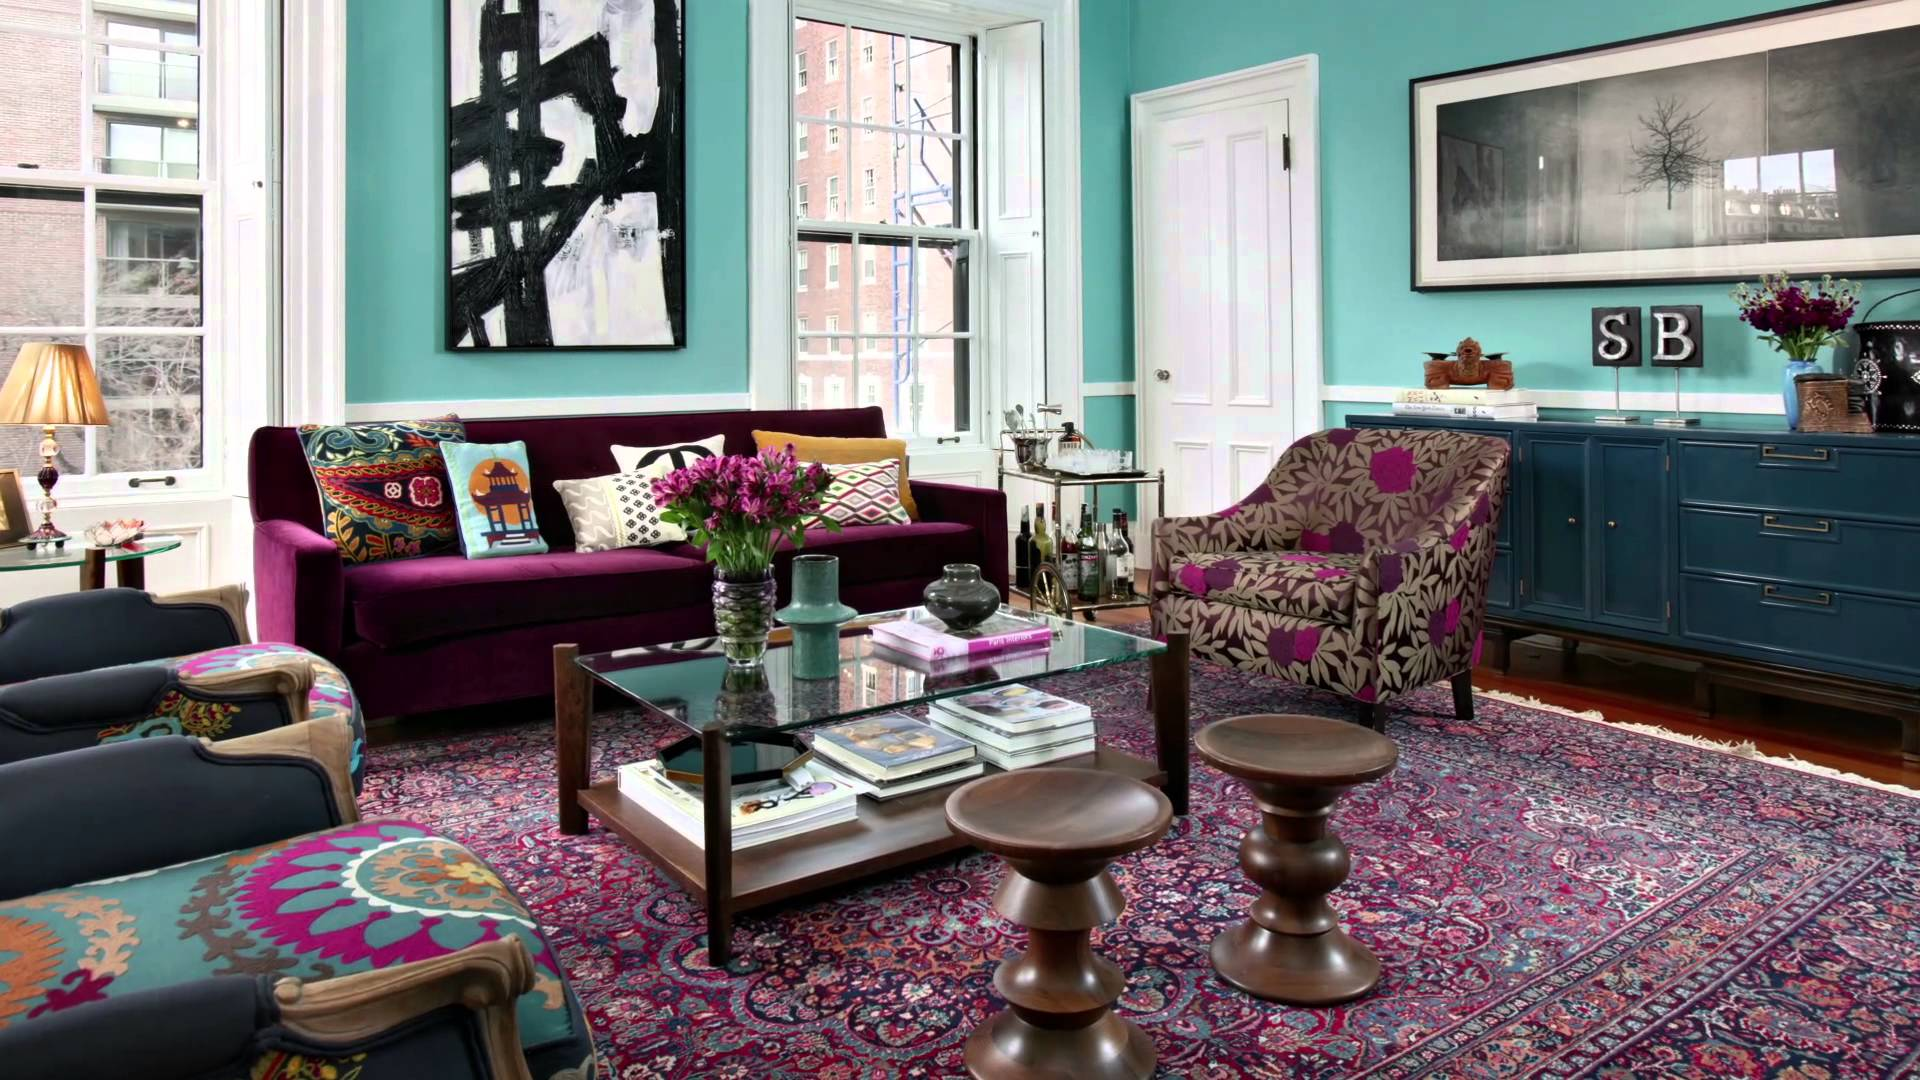 designer interior designers online katie design decorilla decorating curtis york top new nyc